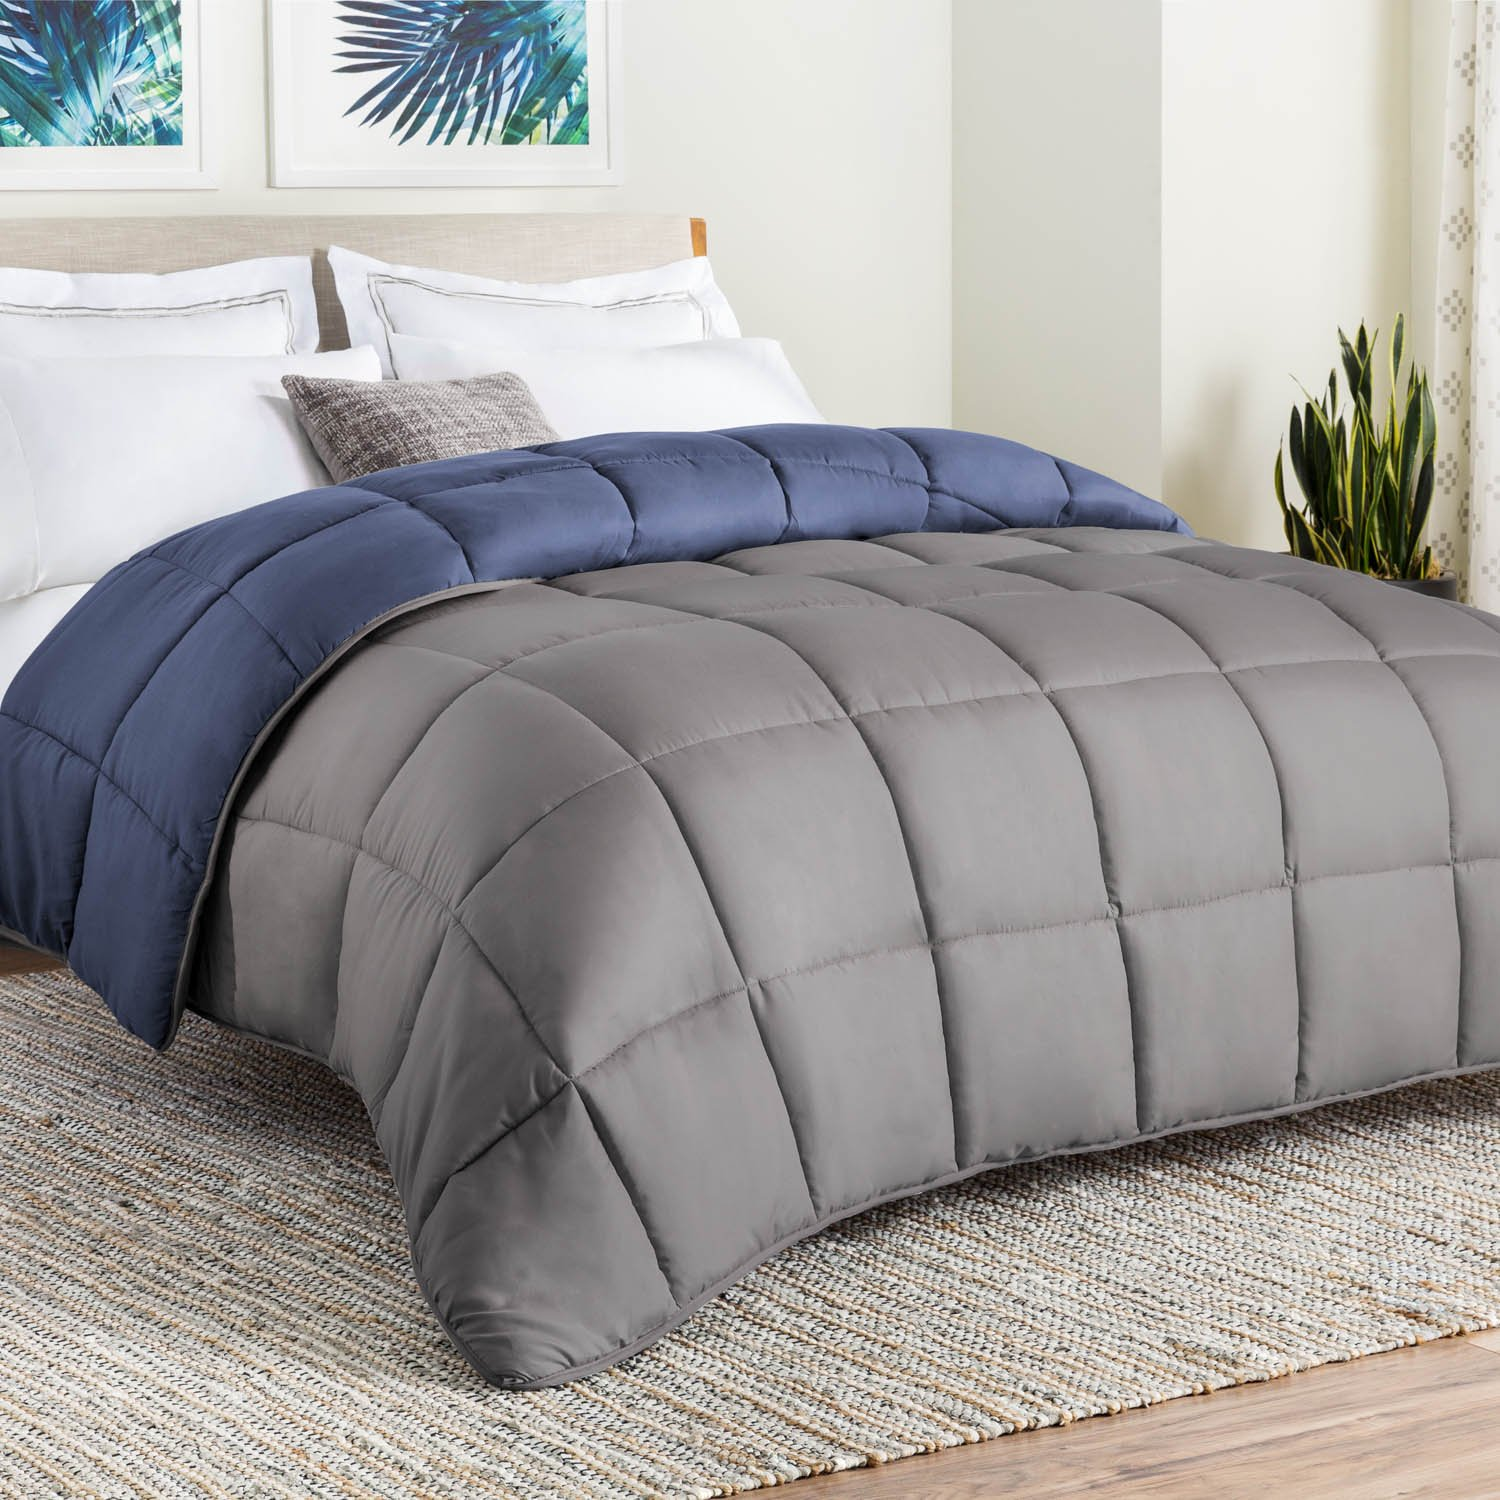 Linenspa All Season Reversible Down Alternative Quilted